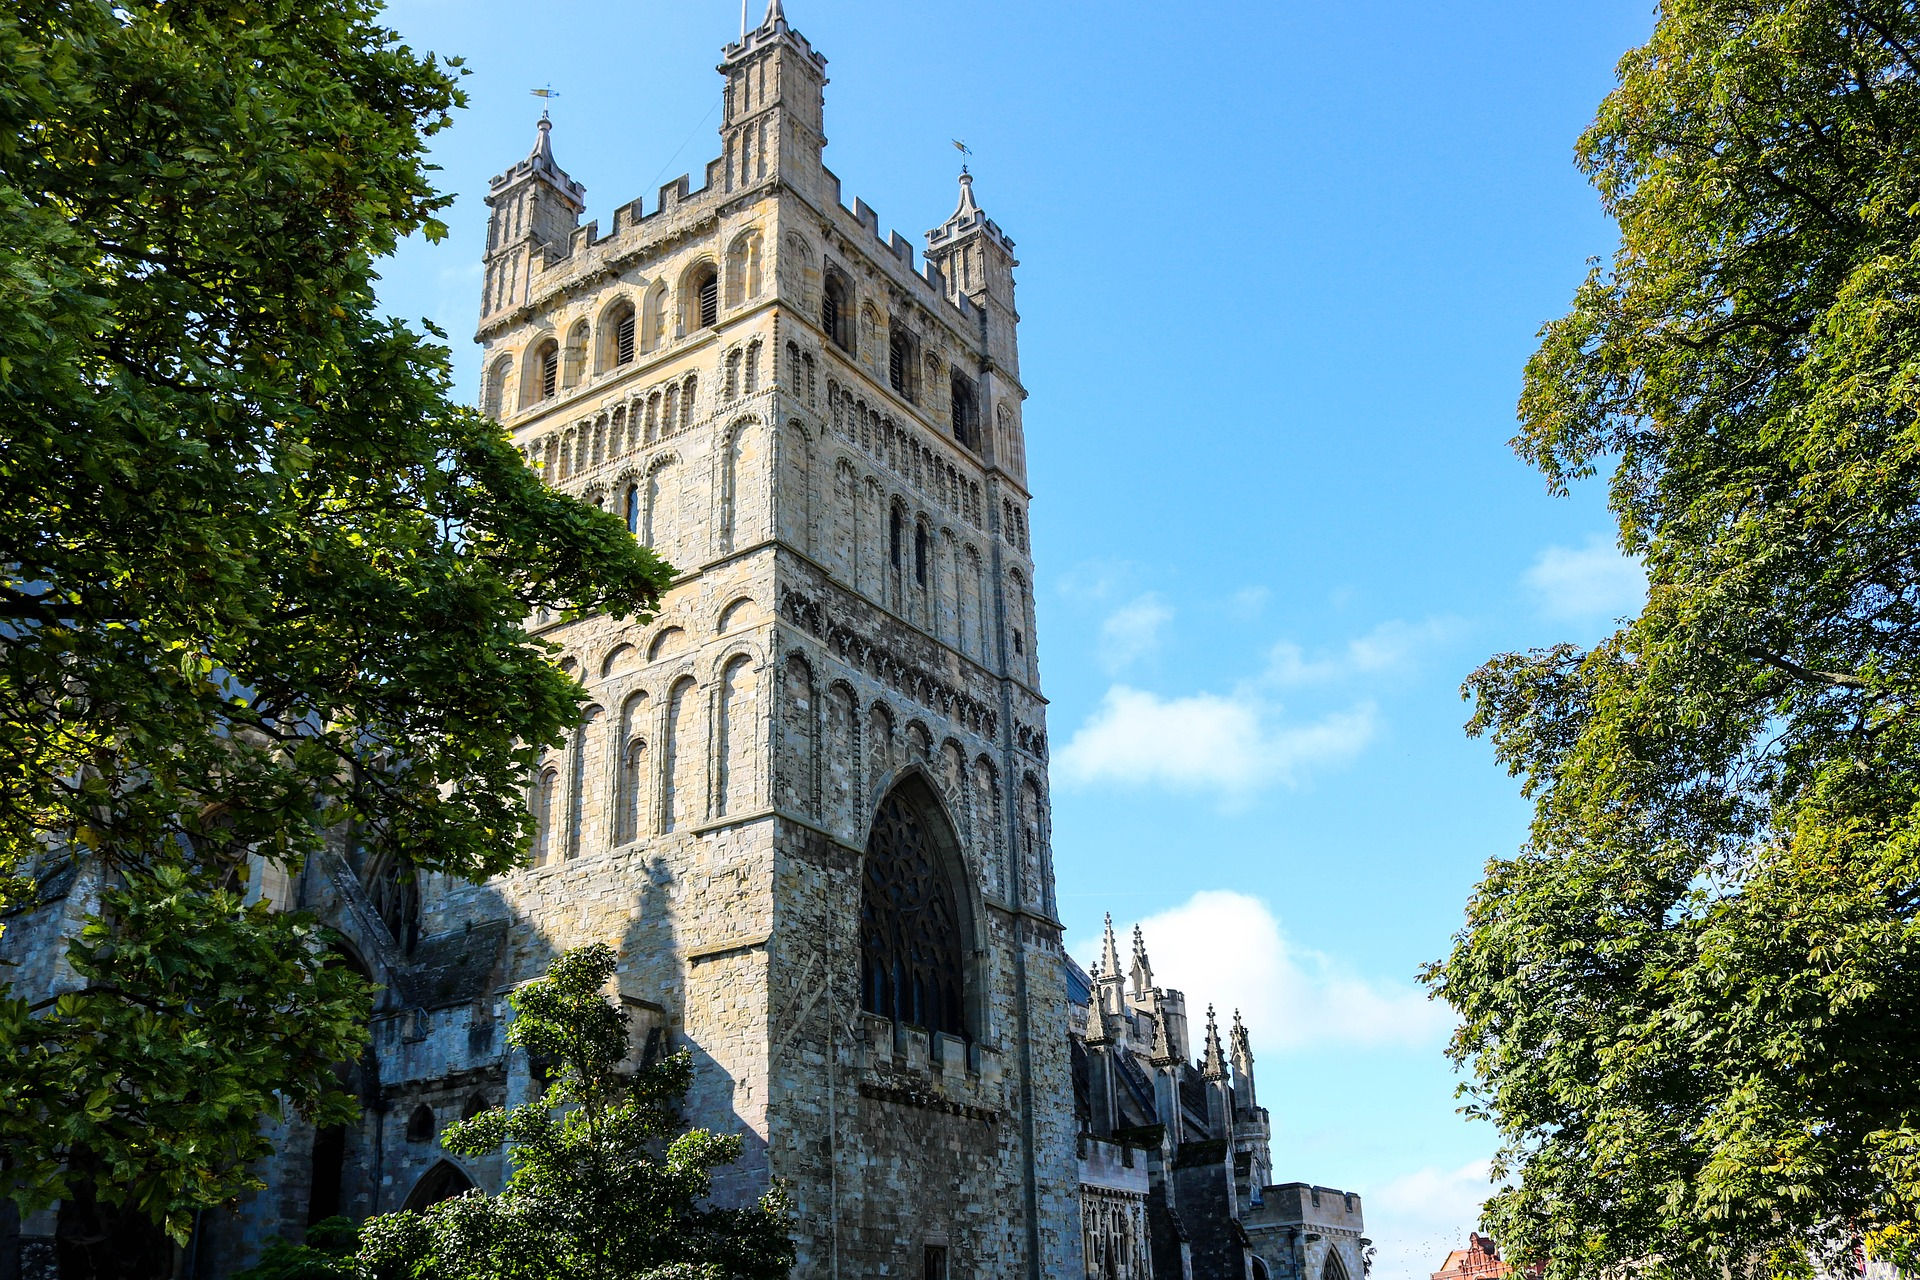 Exeter Cathedral. Image credit: PortiaJones on Pixabay.